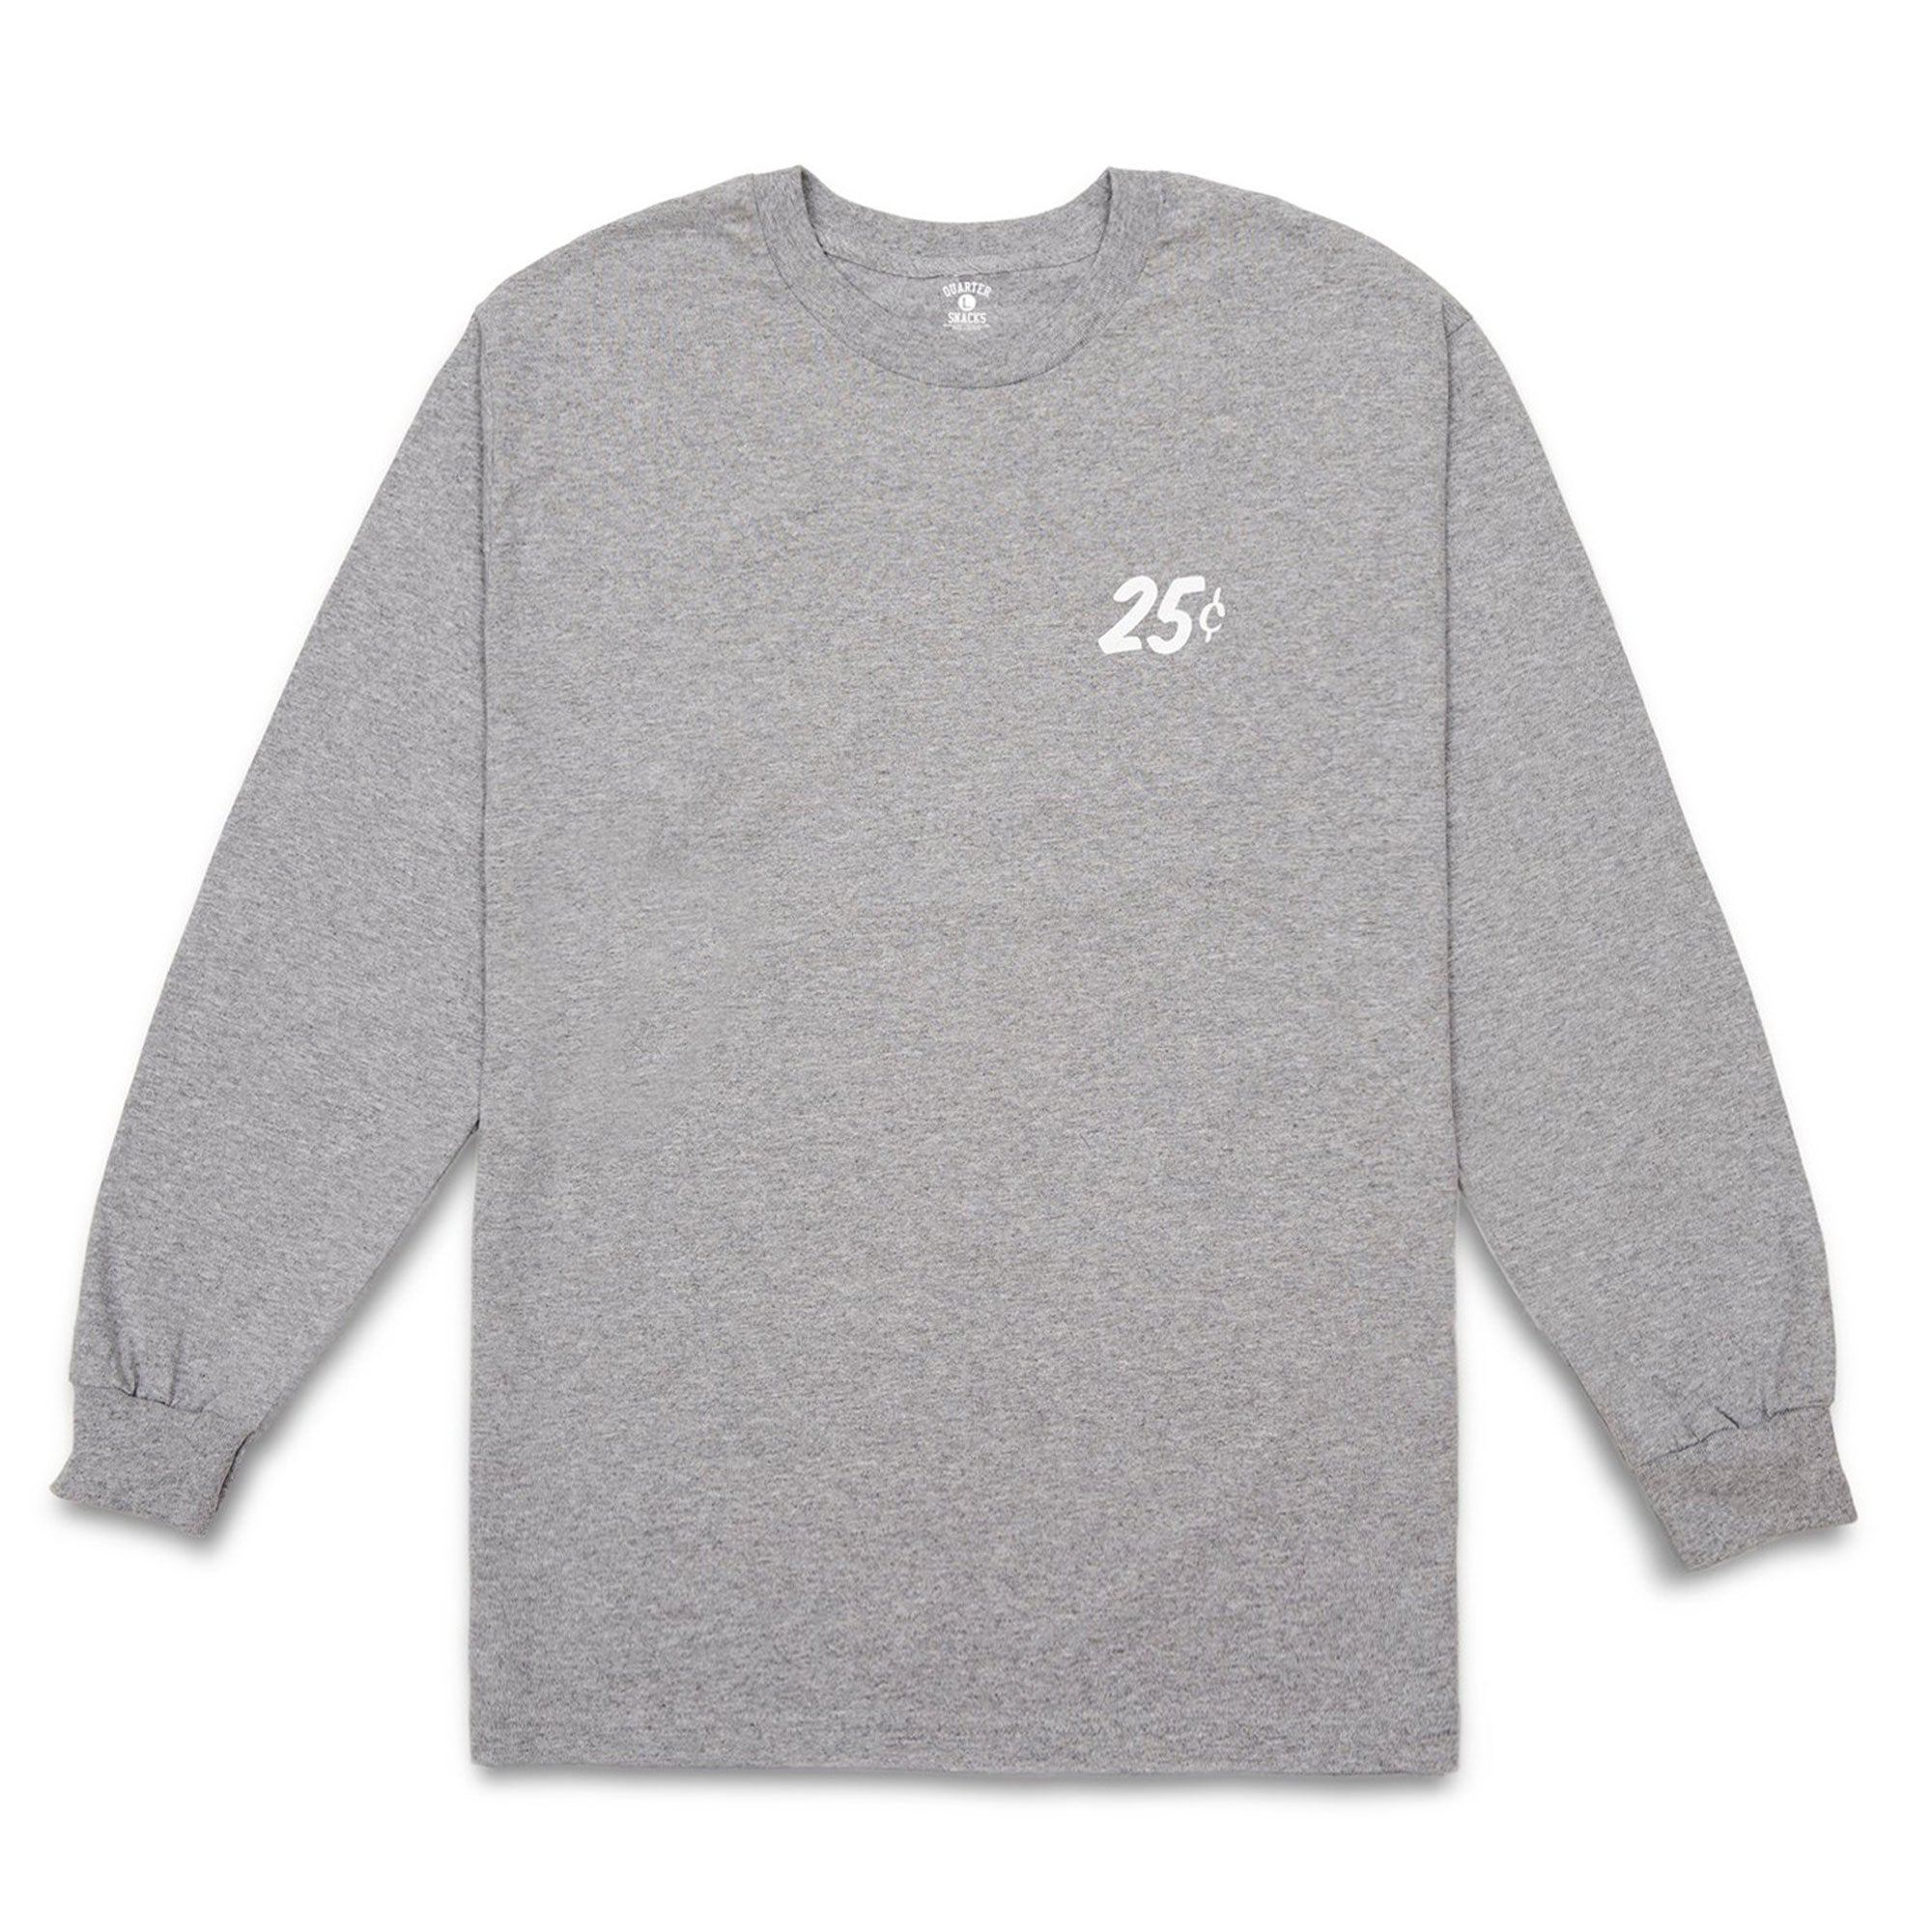 Quartersnacks Classic Snackman Longsleeve Tee Product Photo #2